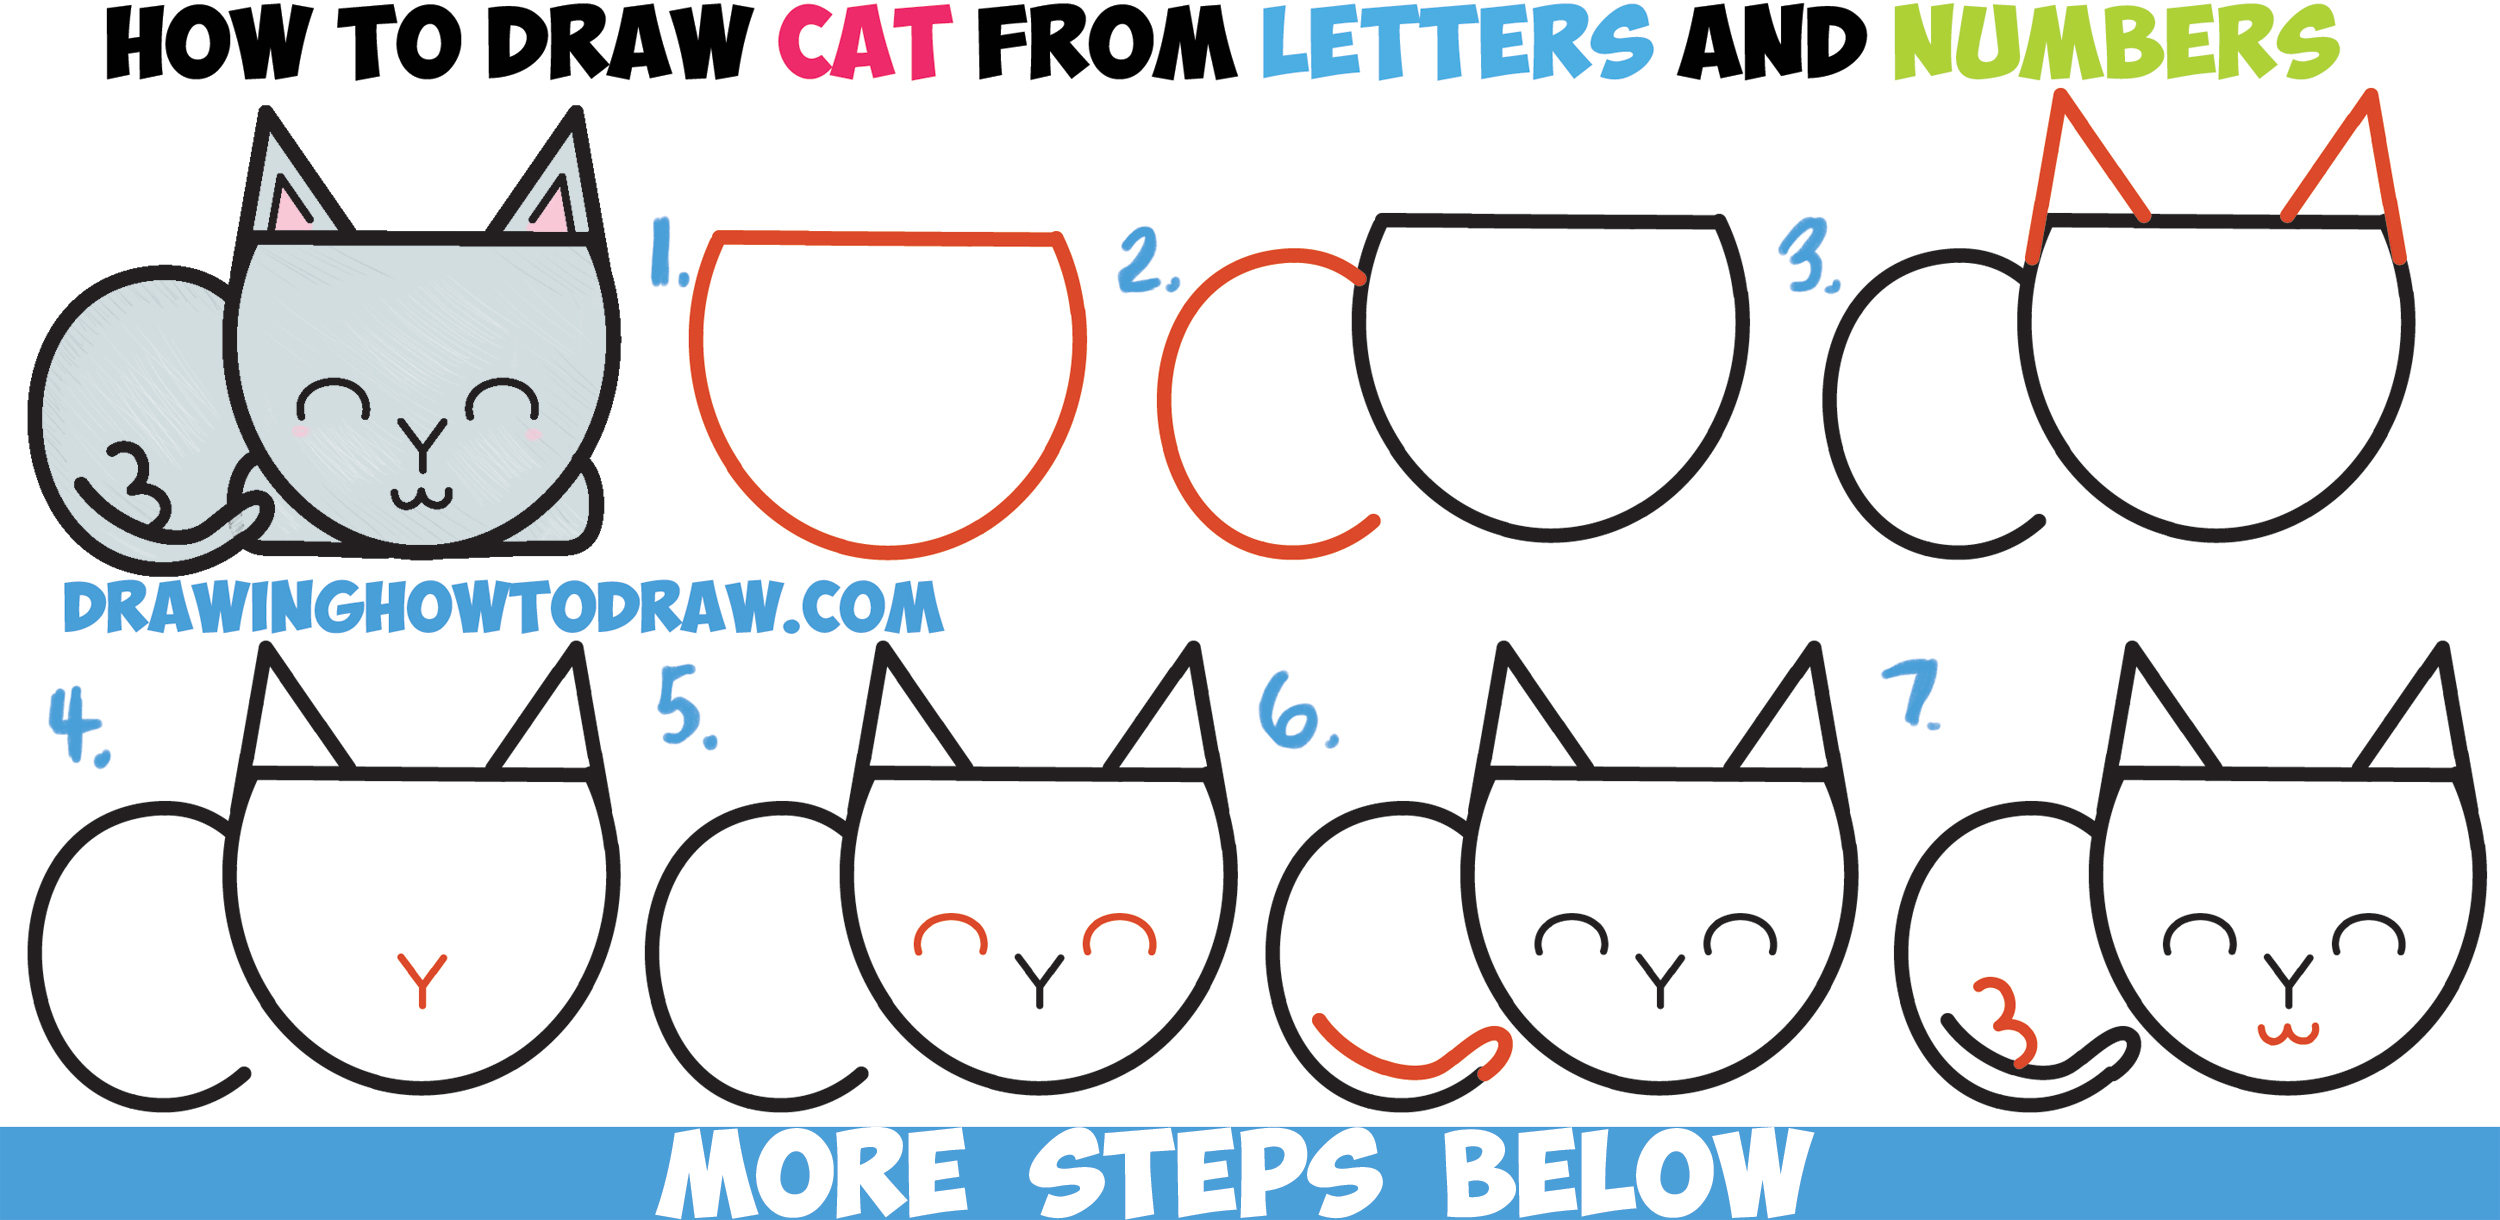 How to Draw a Cute Cartoon Cat Completely from Letters, Numbers, & Shapes Easy Step by Step Drawing Tutorial for Kids